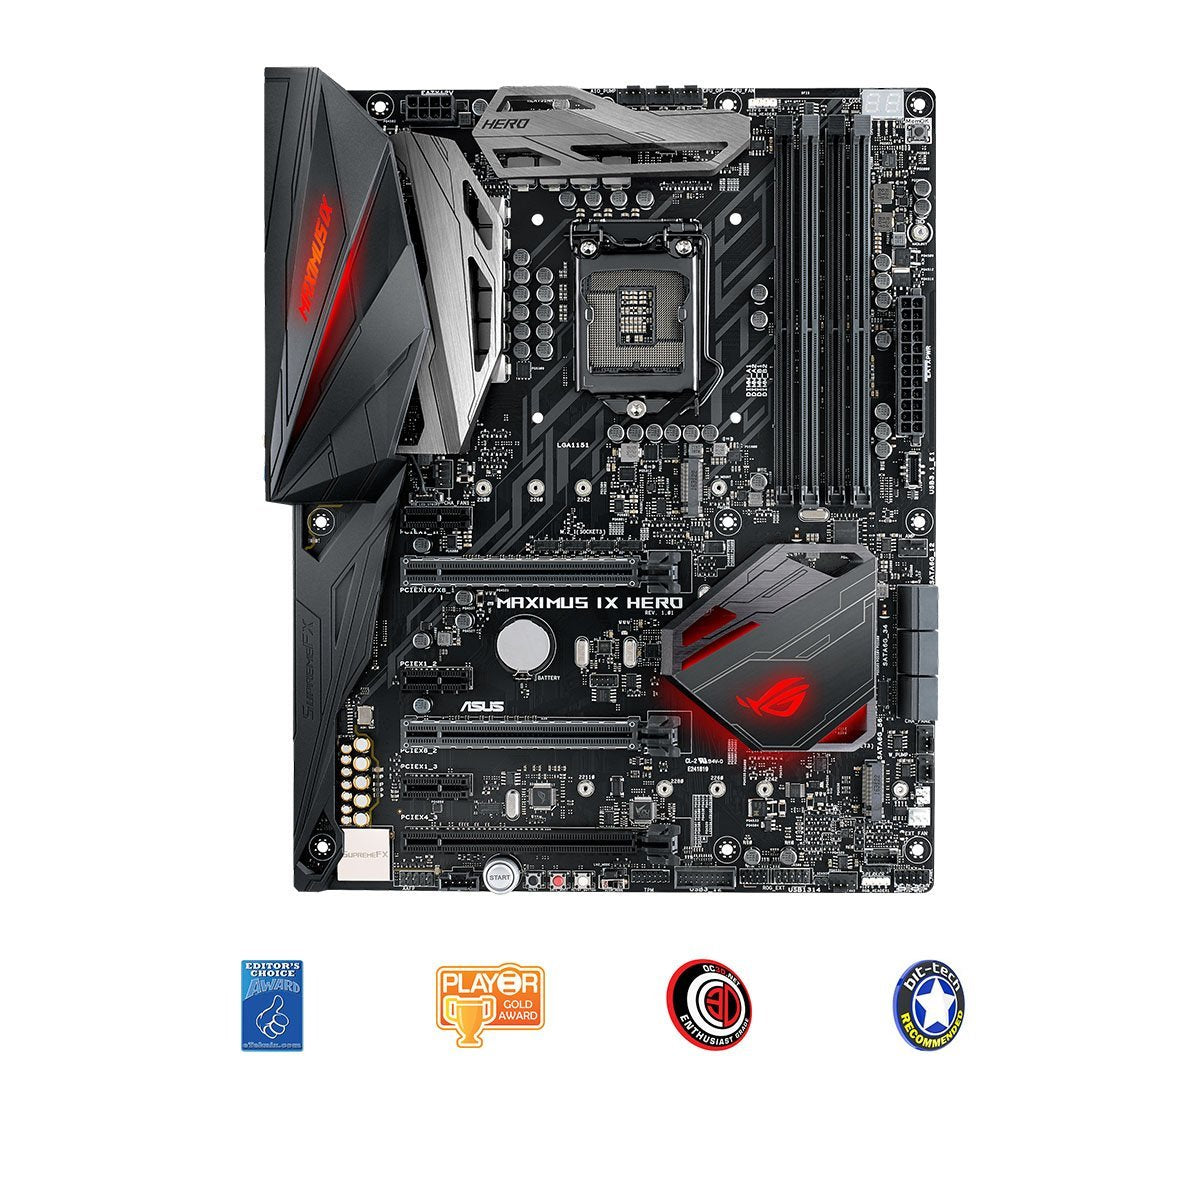 Asus Z270 Maximus IX Hero - LGA1151 - 7th Generation MotherBoard